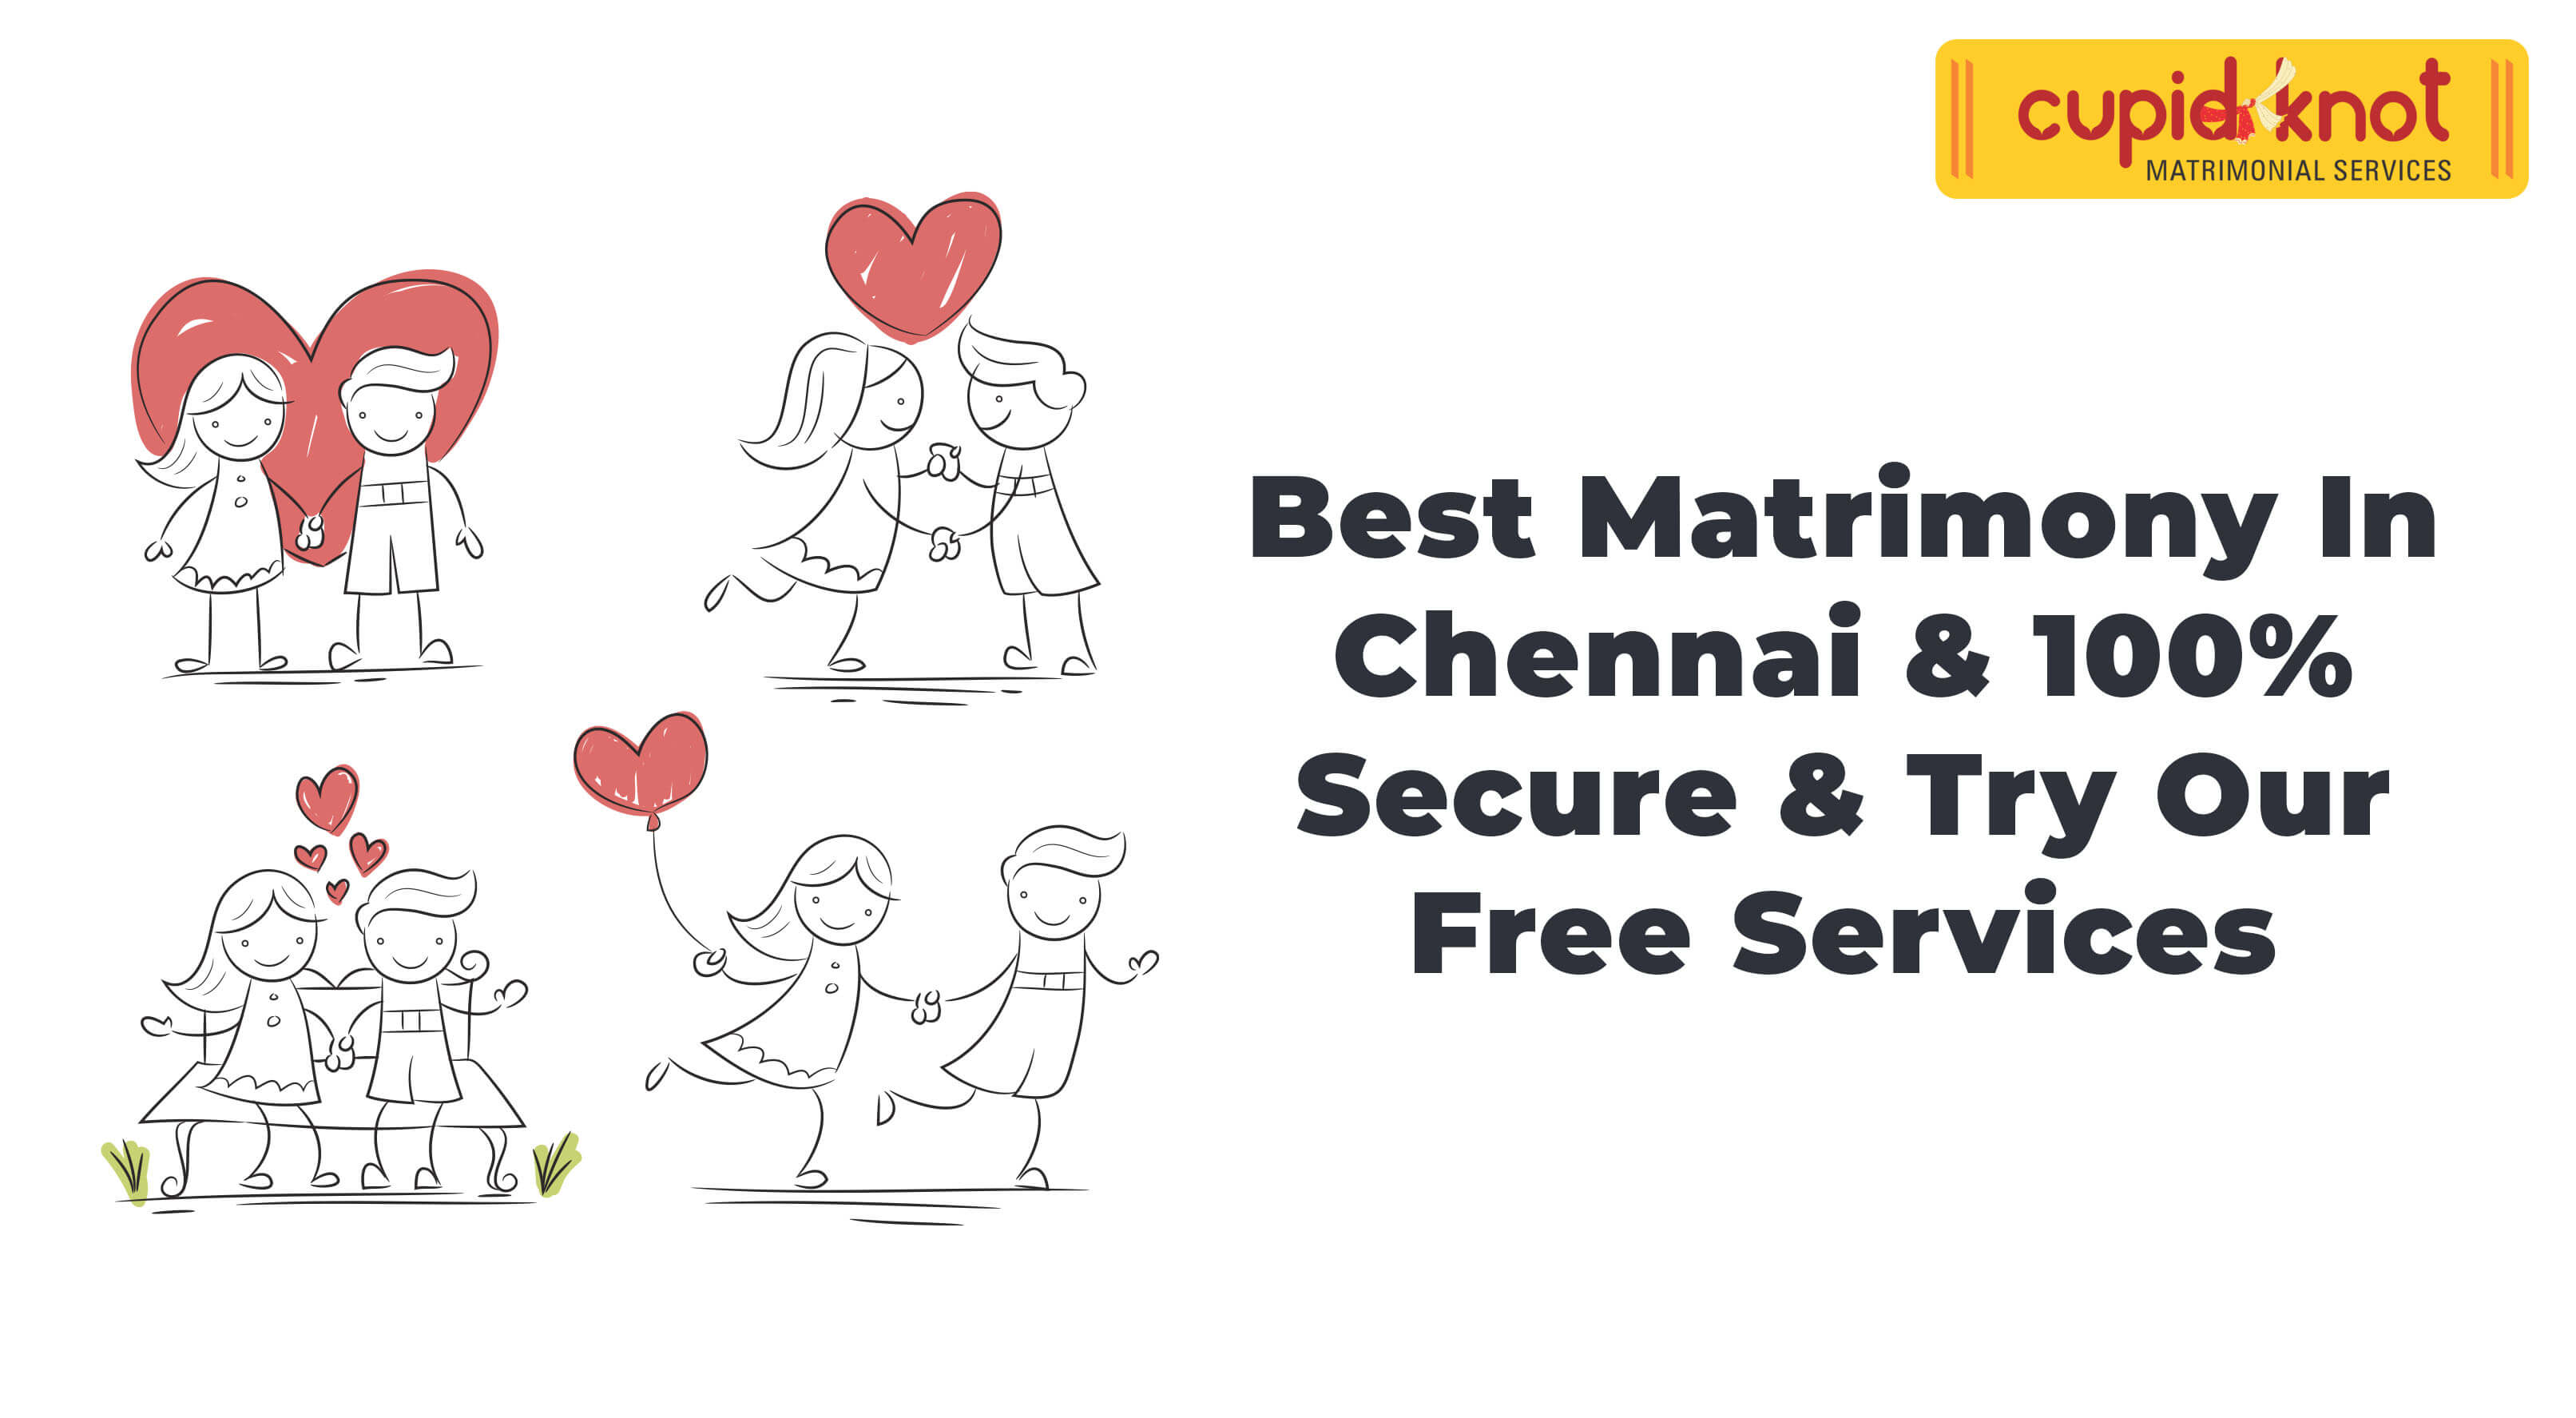 Best Matrimony in Chennai & 100% Secure & Try Our Free Services